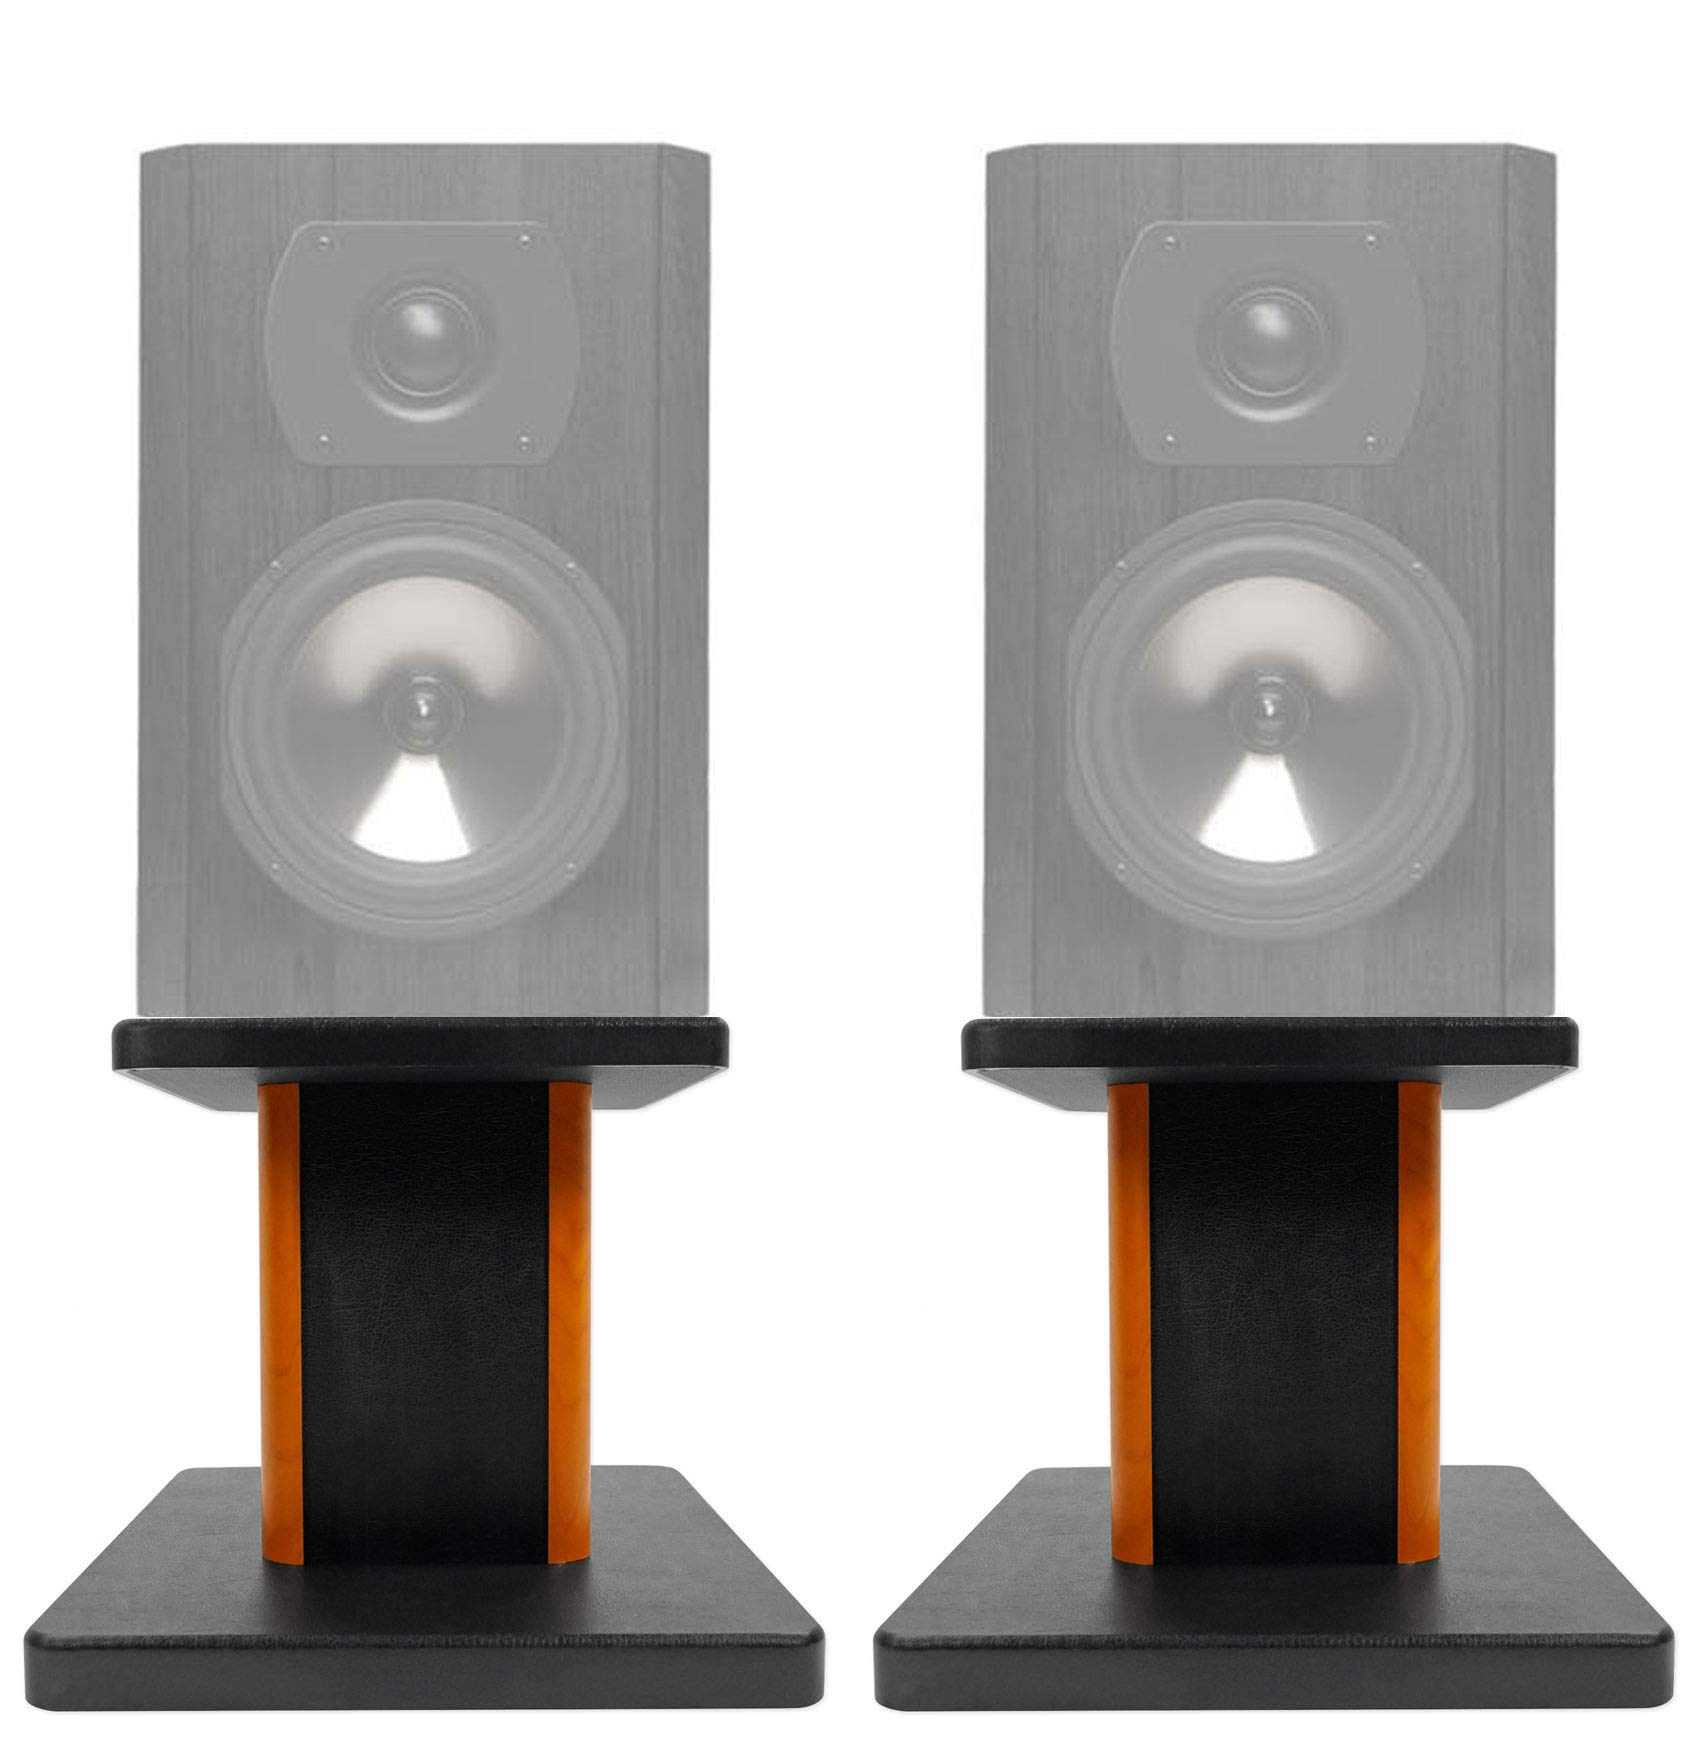 ROCKVILLE 2 8'' Wood Bookshelf Speaker Stands for Boston Acoustics CS23 Bookshelf Speakers by ROCKVILLE